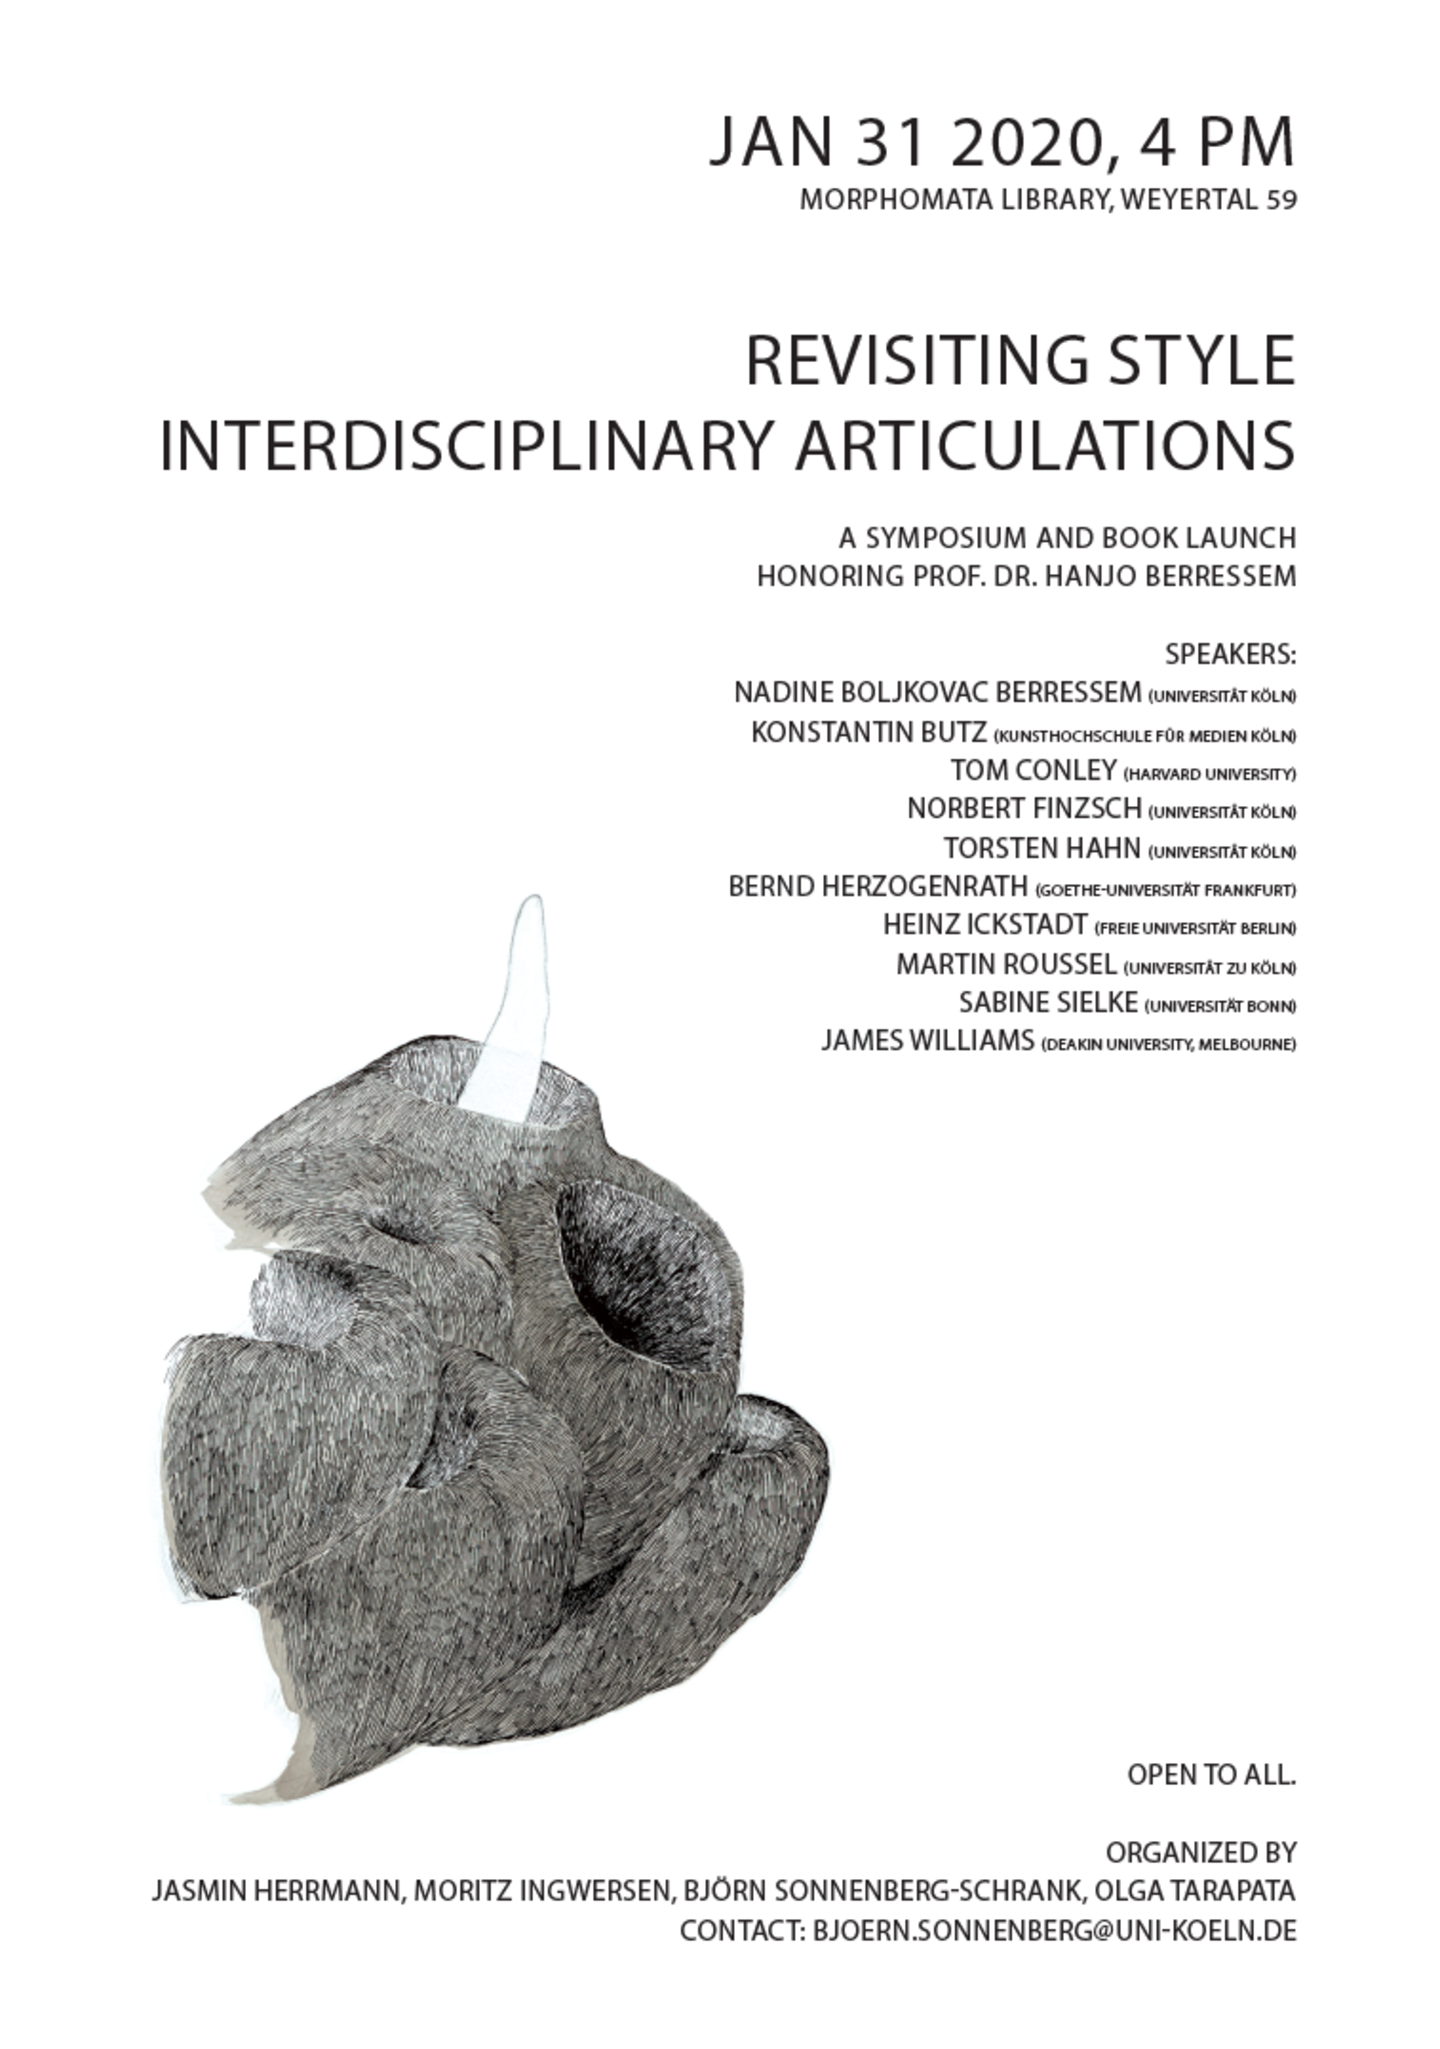 Poster for the Symposium: Revisiting Style